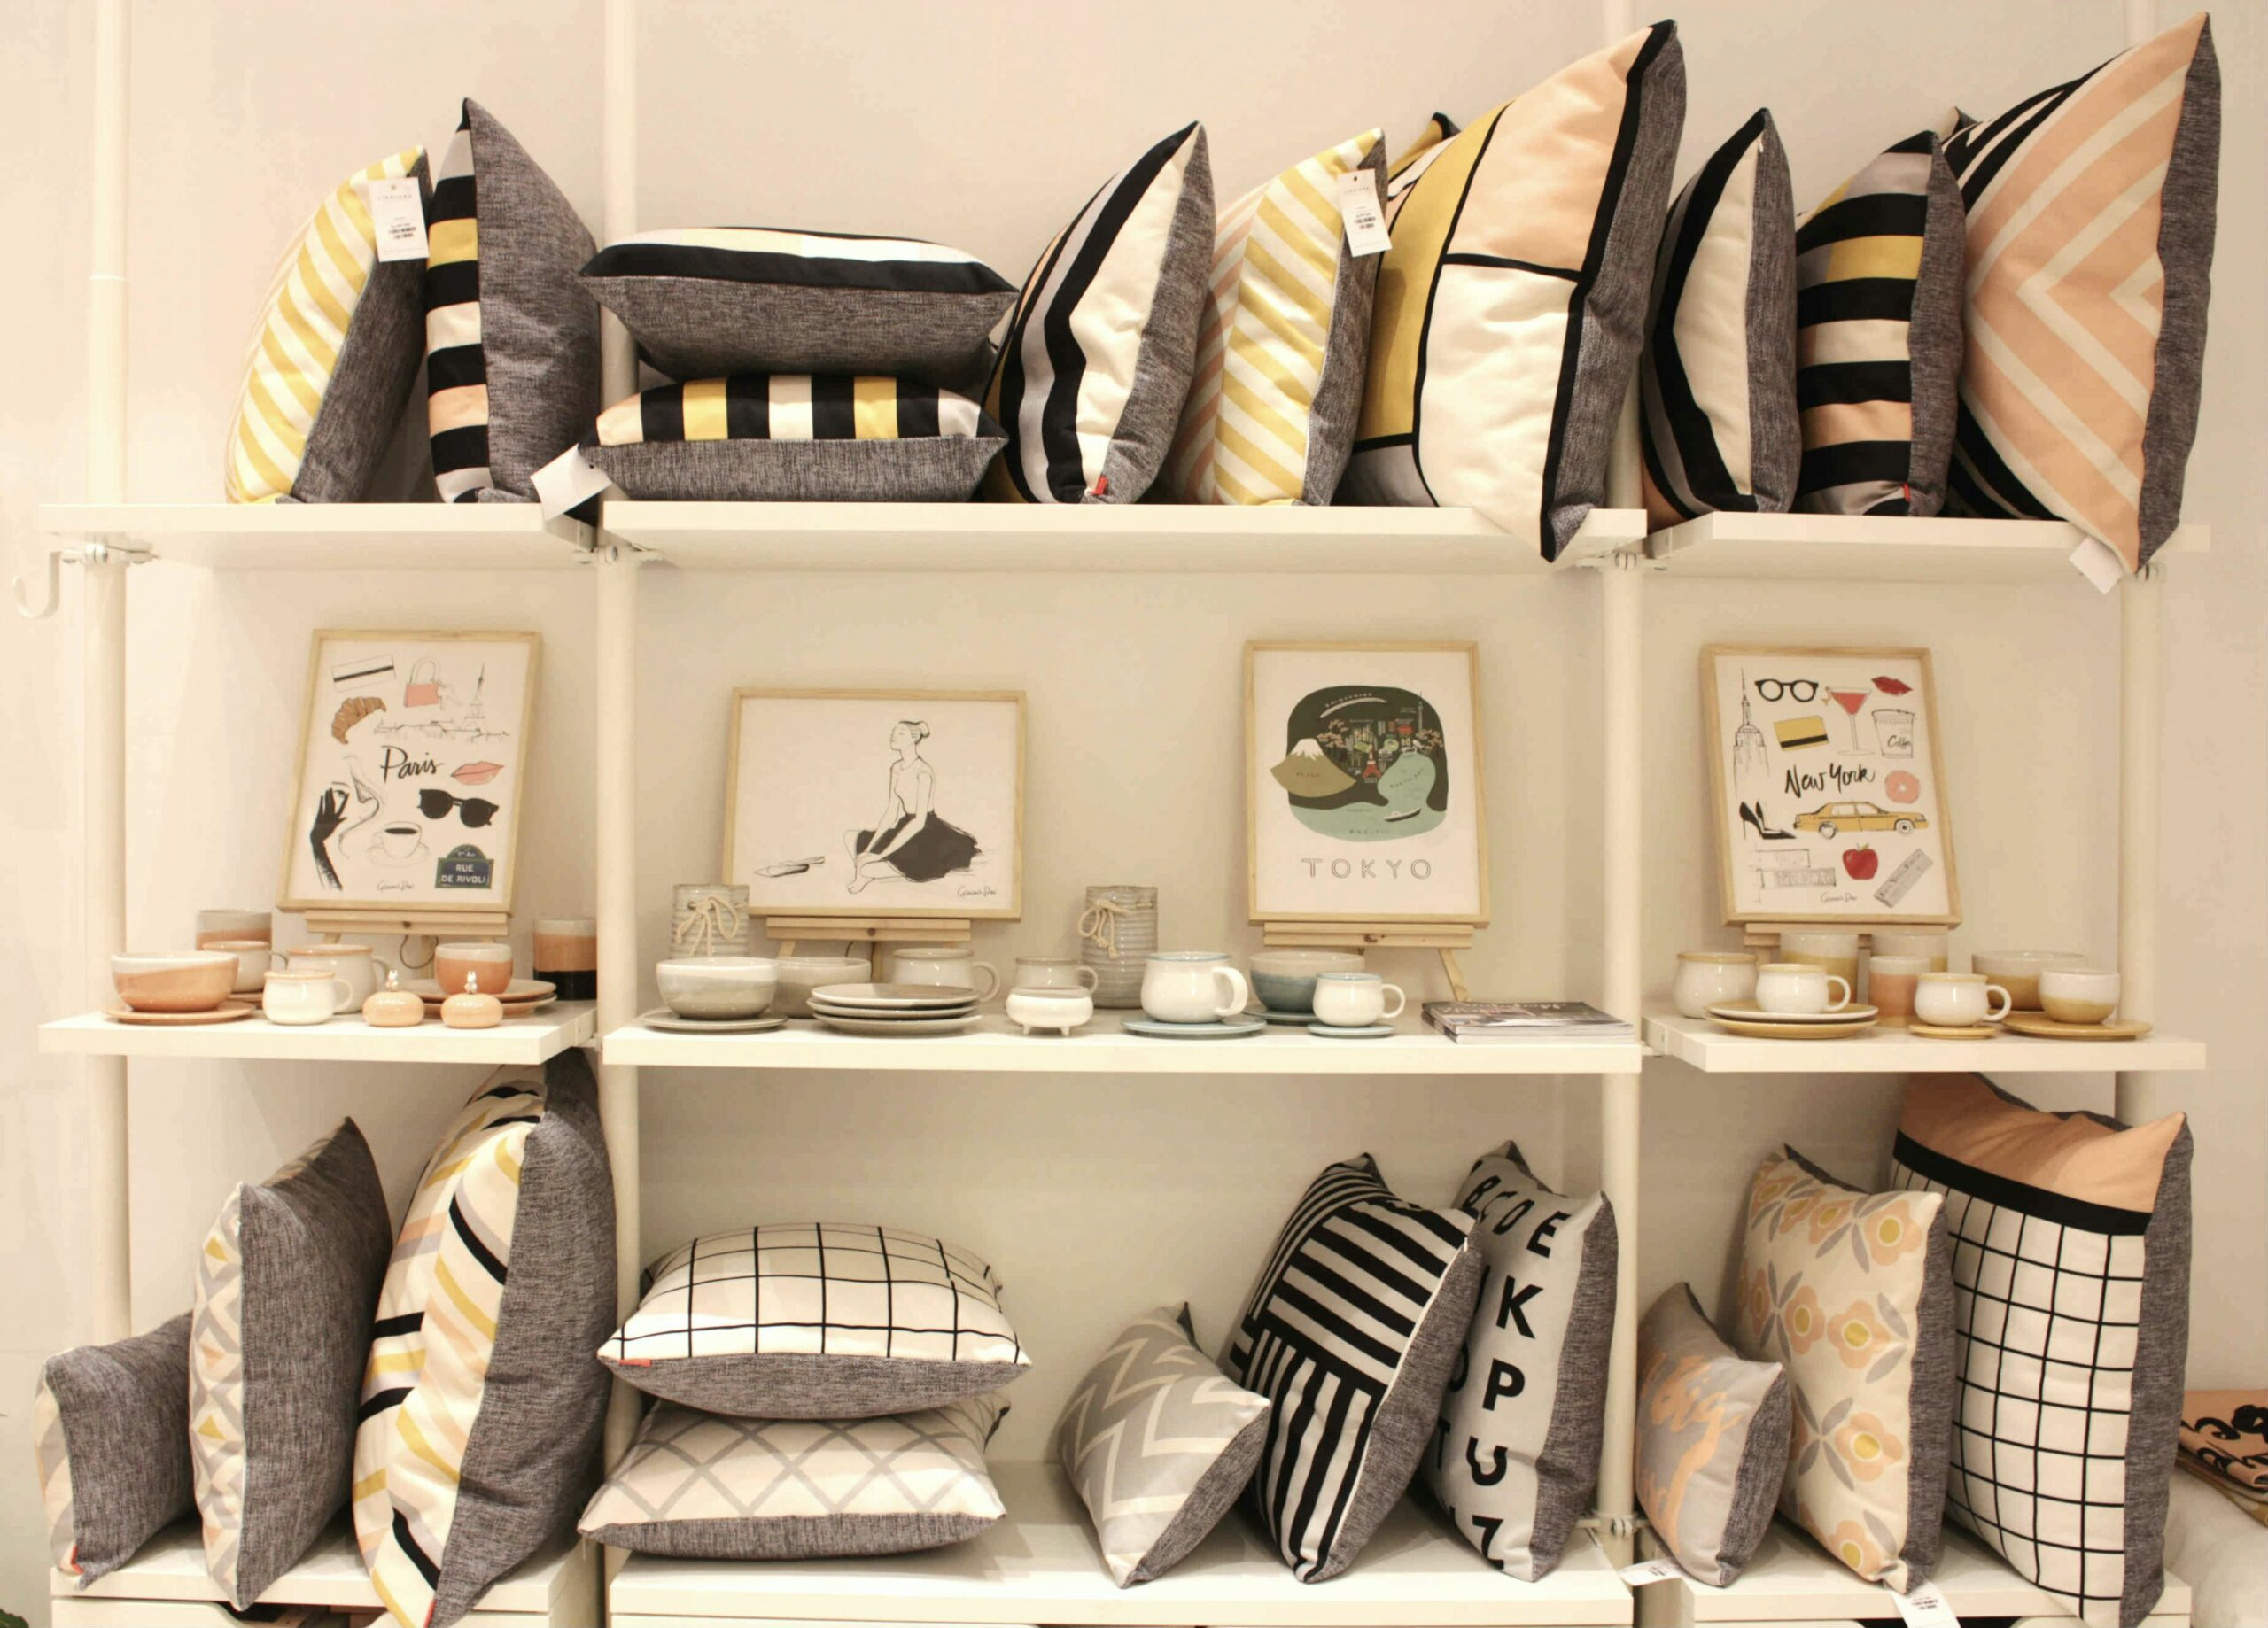 MODERN AND CHIC LINOLUNA - Living Loving - For All Things Lovely